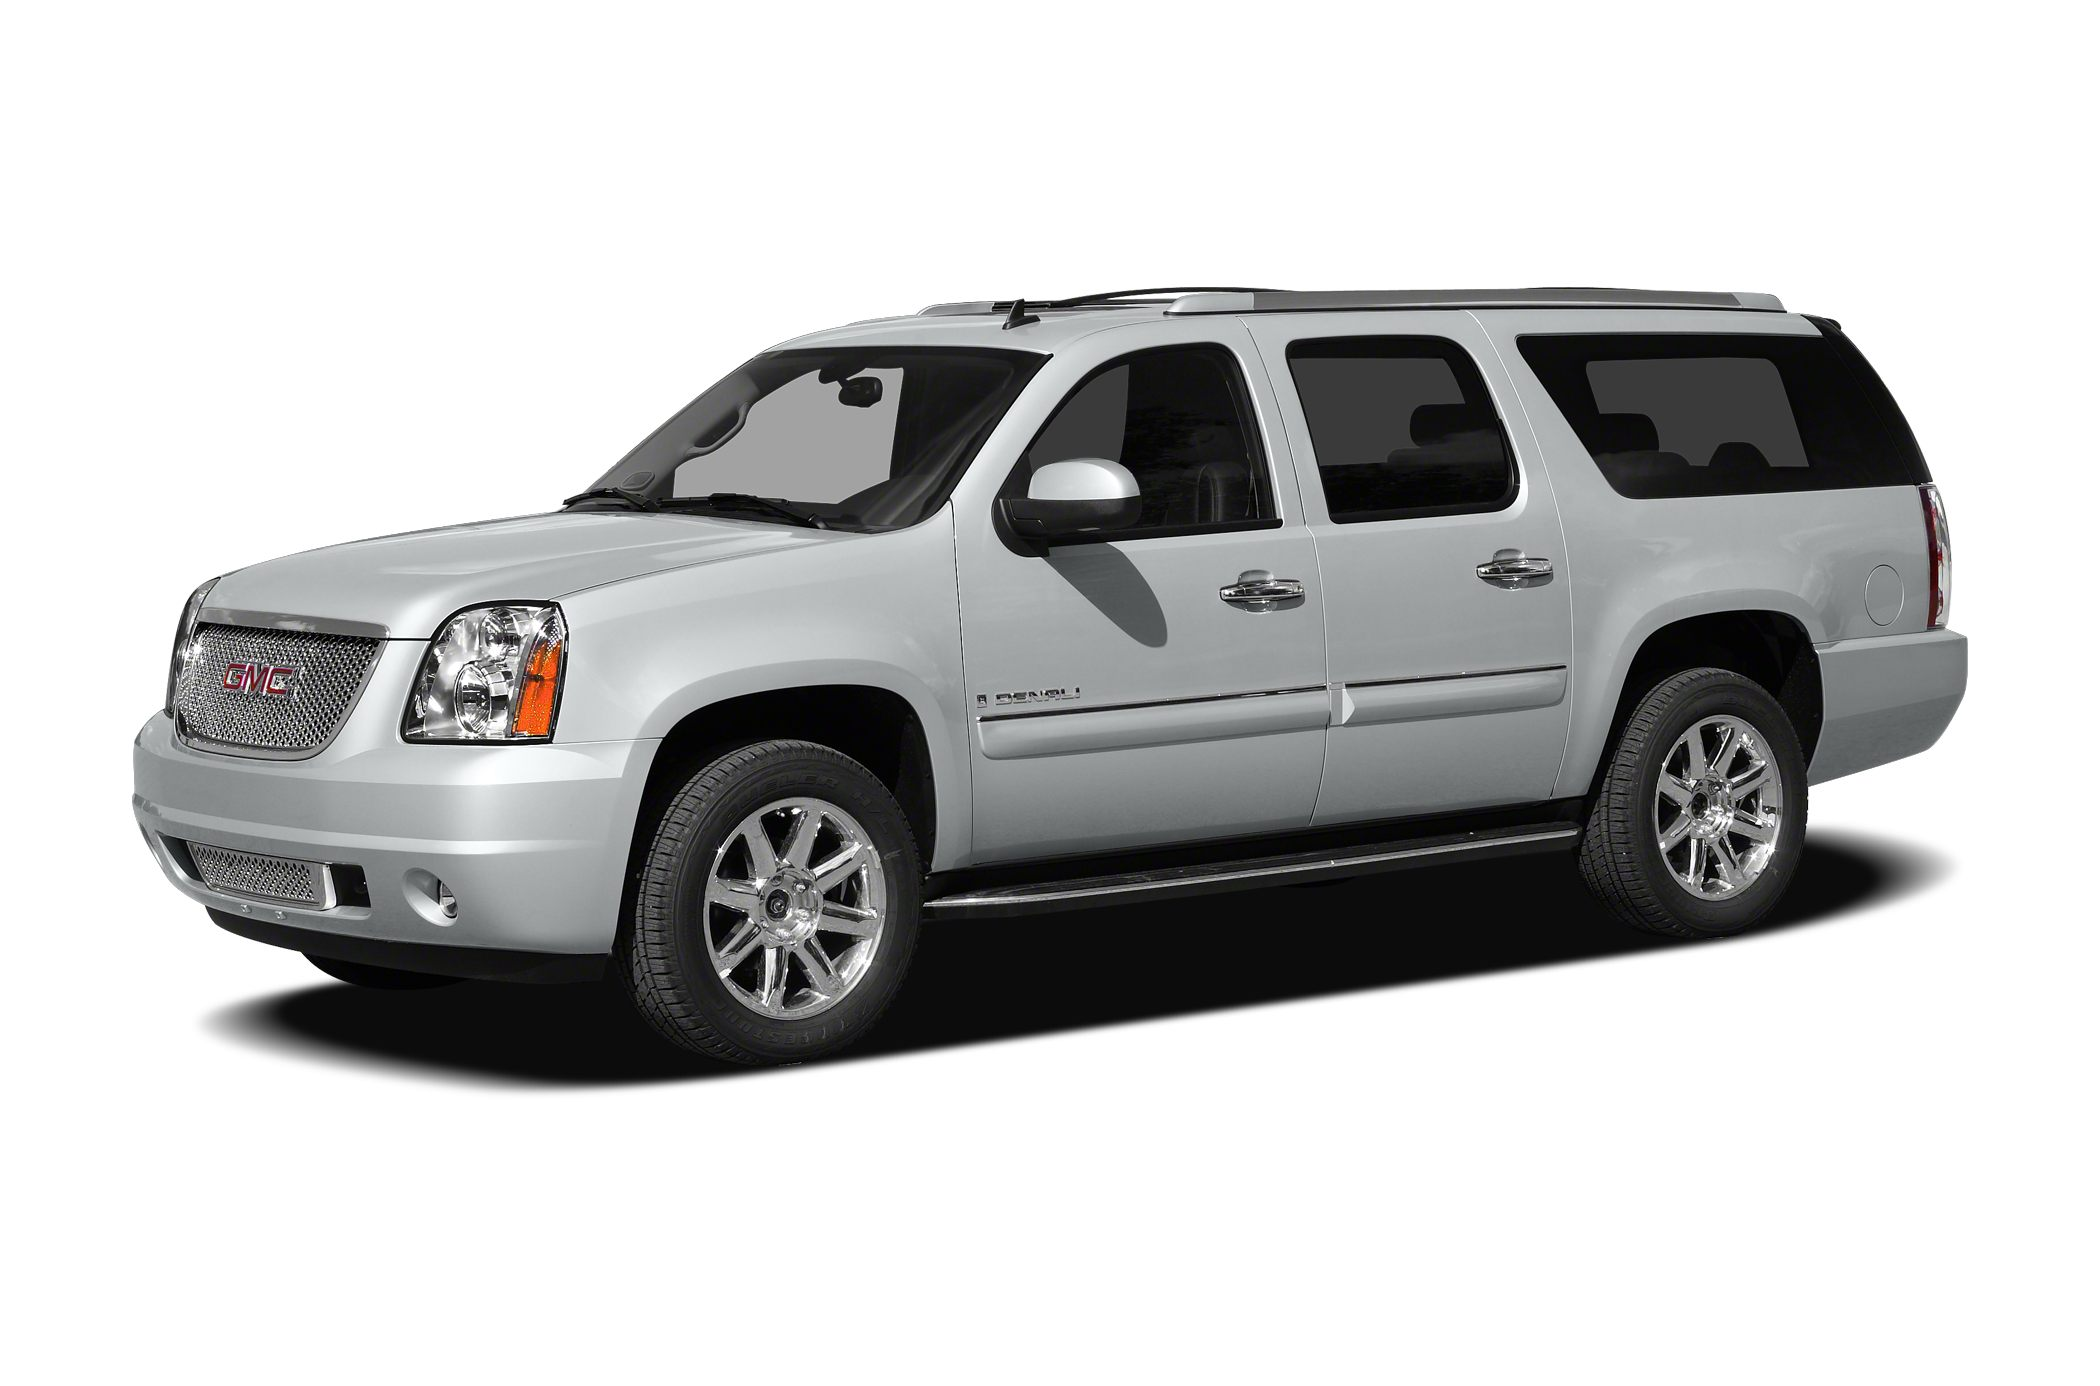 2011 GMC Yukon XL 1500 Denali Miles 98245Color Black Stock TS282355 VIN 1GKS2MEF5BR282355